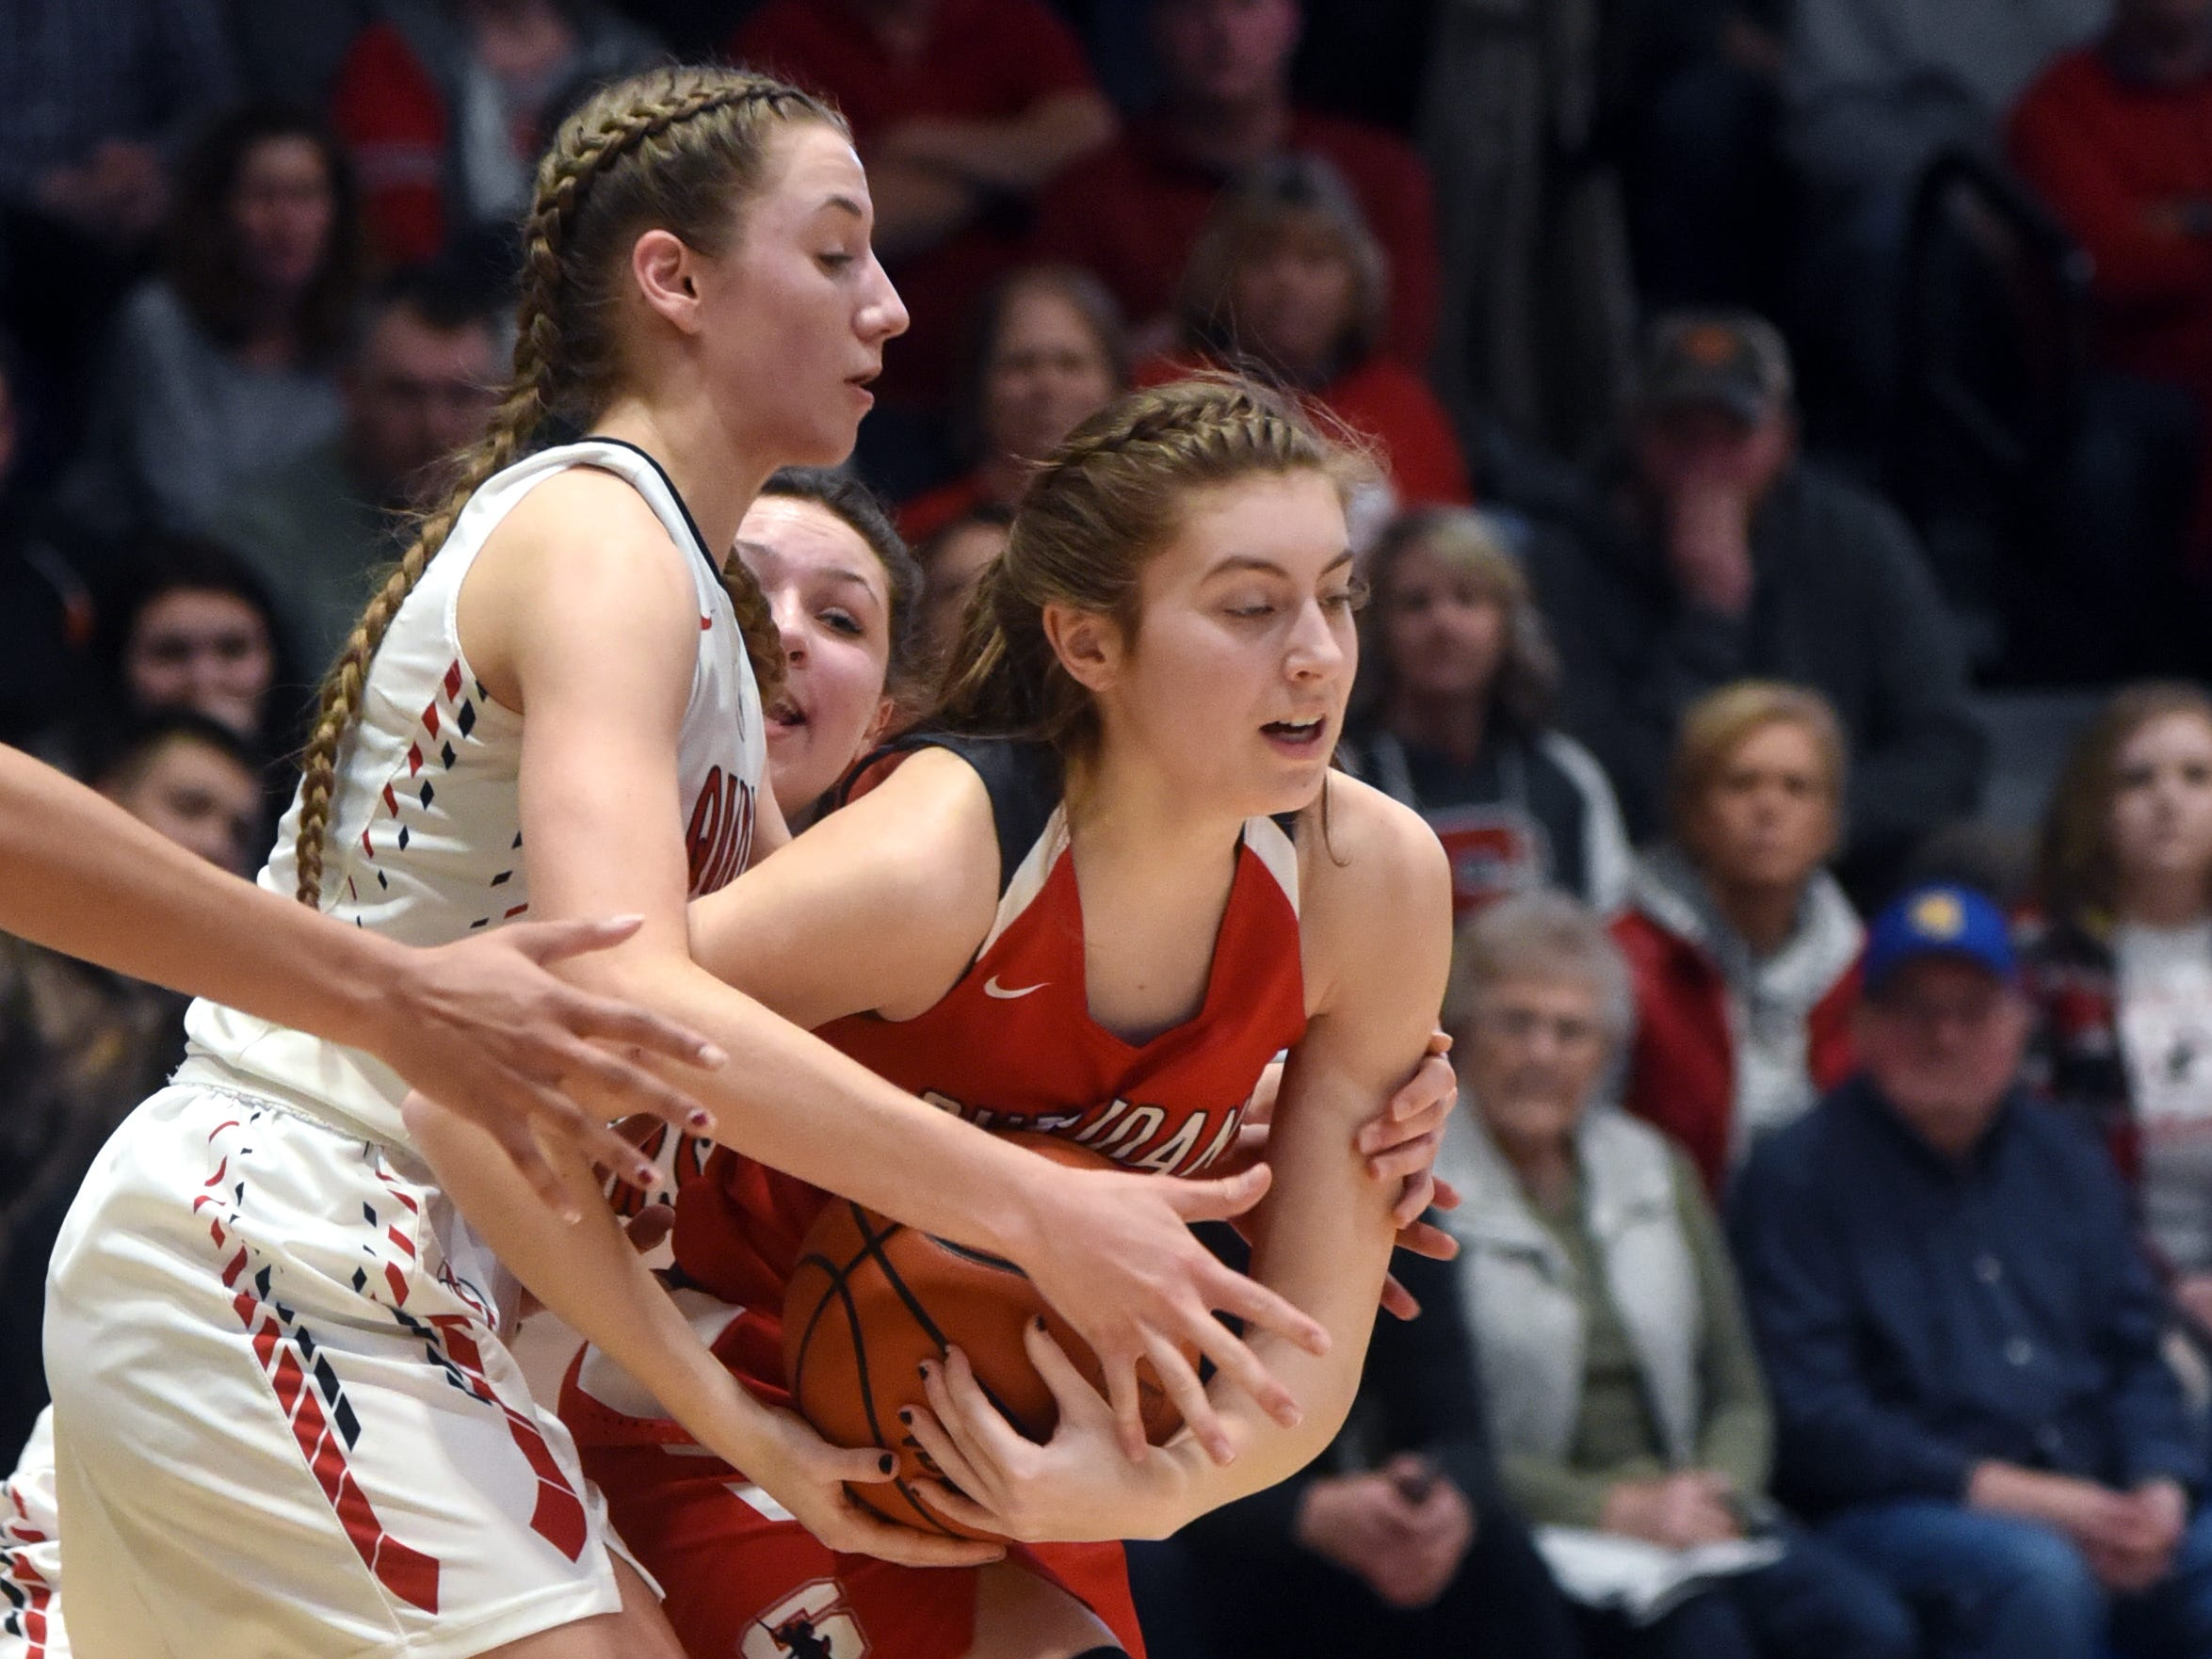 Aubrie White, of Sheridan, is tied up by a New Philadelphia defender during the Generals' 48-46 win on Friday night at Winland Memorial Gymnasium.